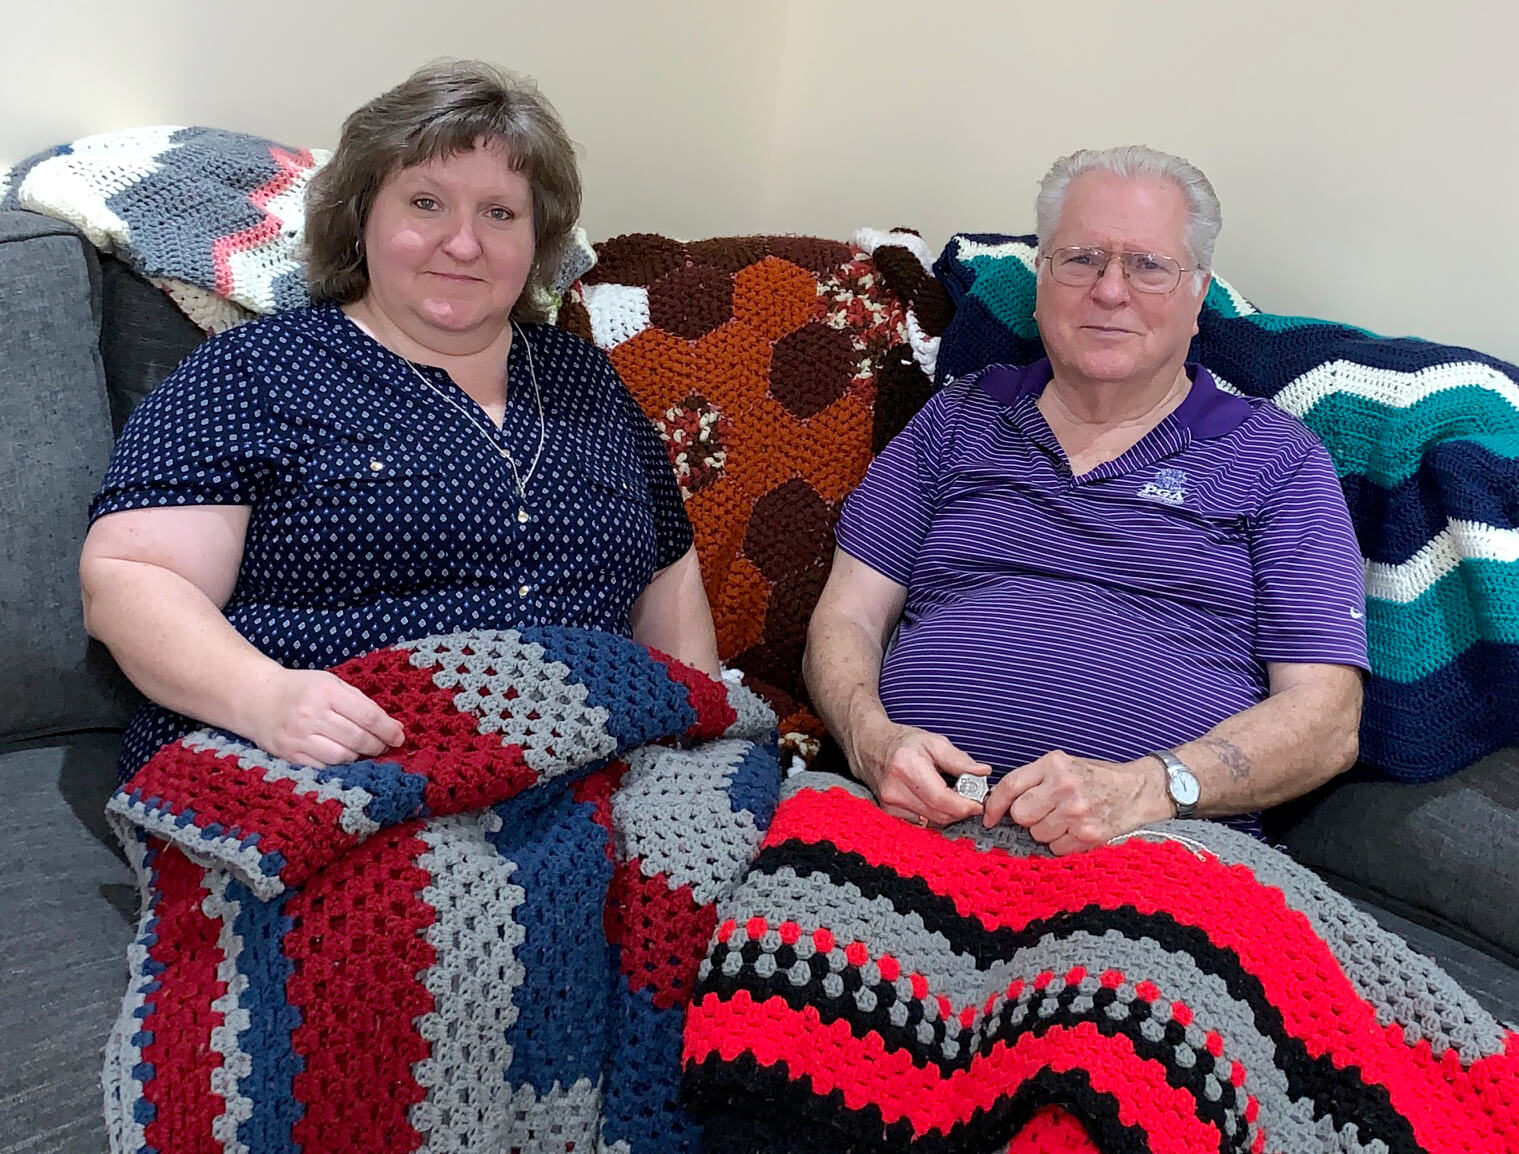 Dana Fisher and her dad with their crocheted blankets